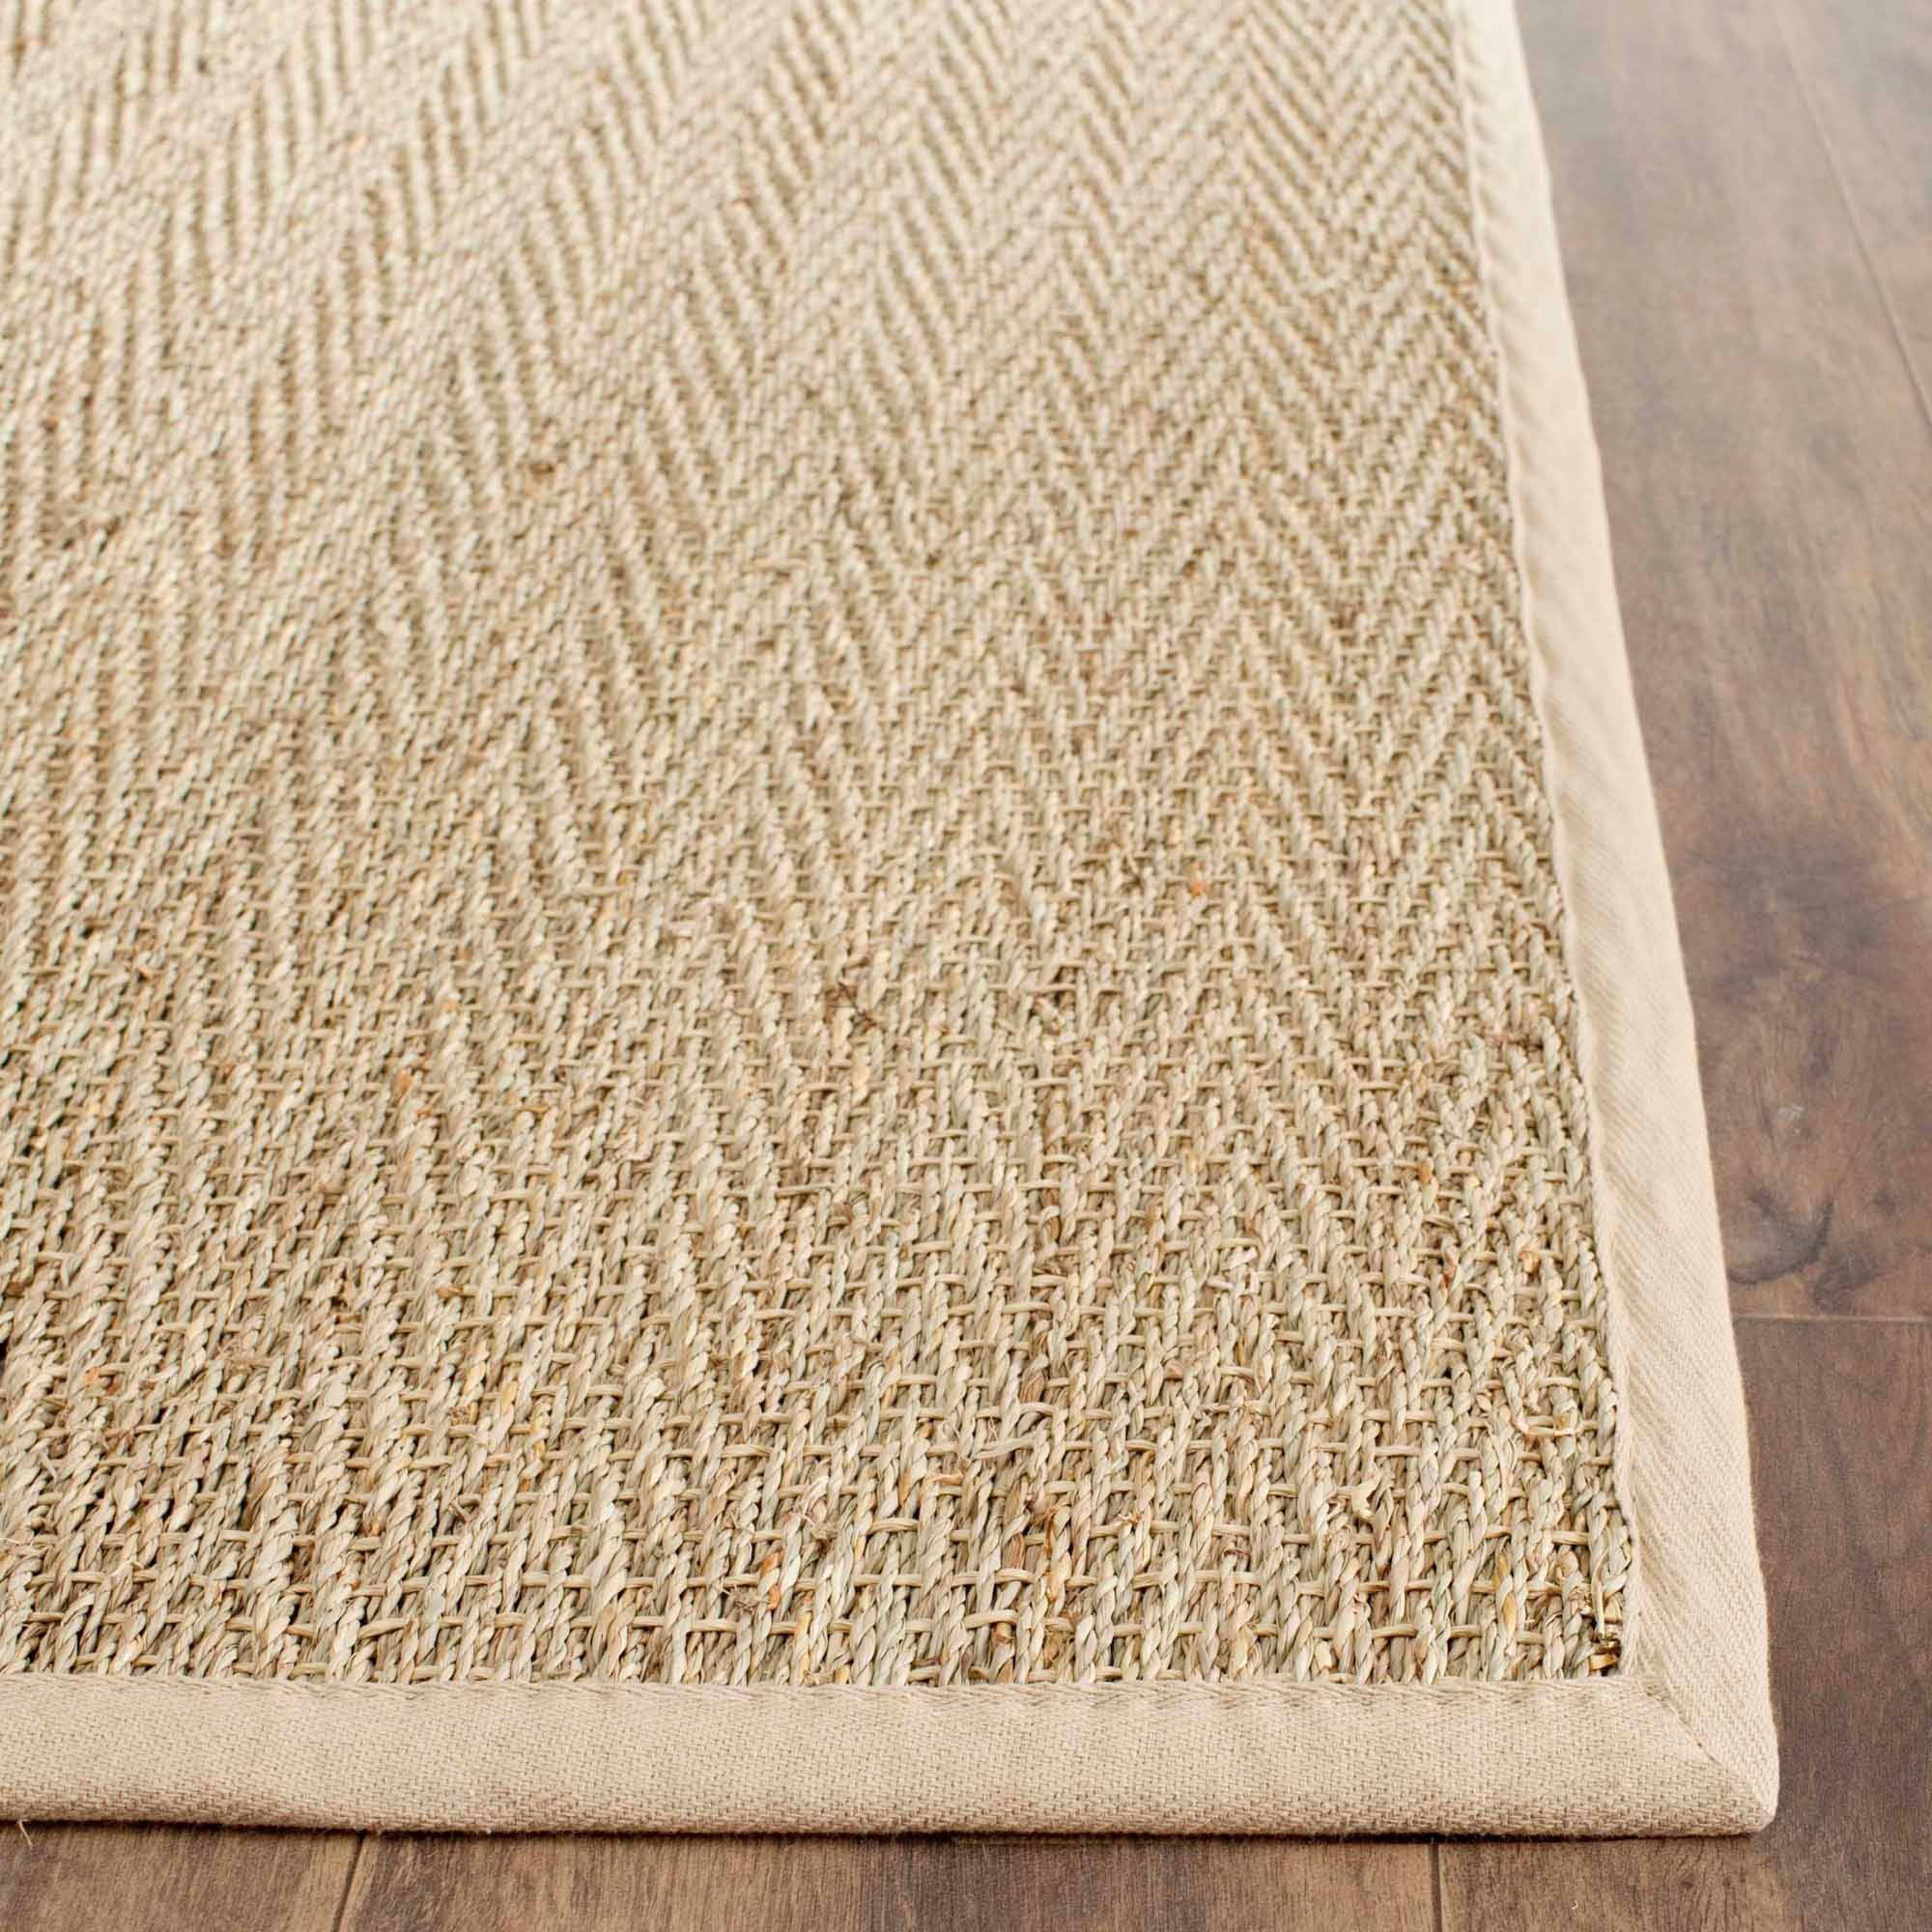 Safavieh Herringbone Seagrass Area Rug, Natural/Beige